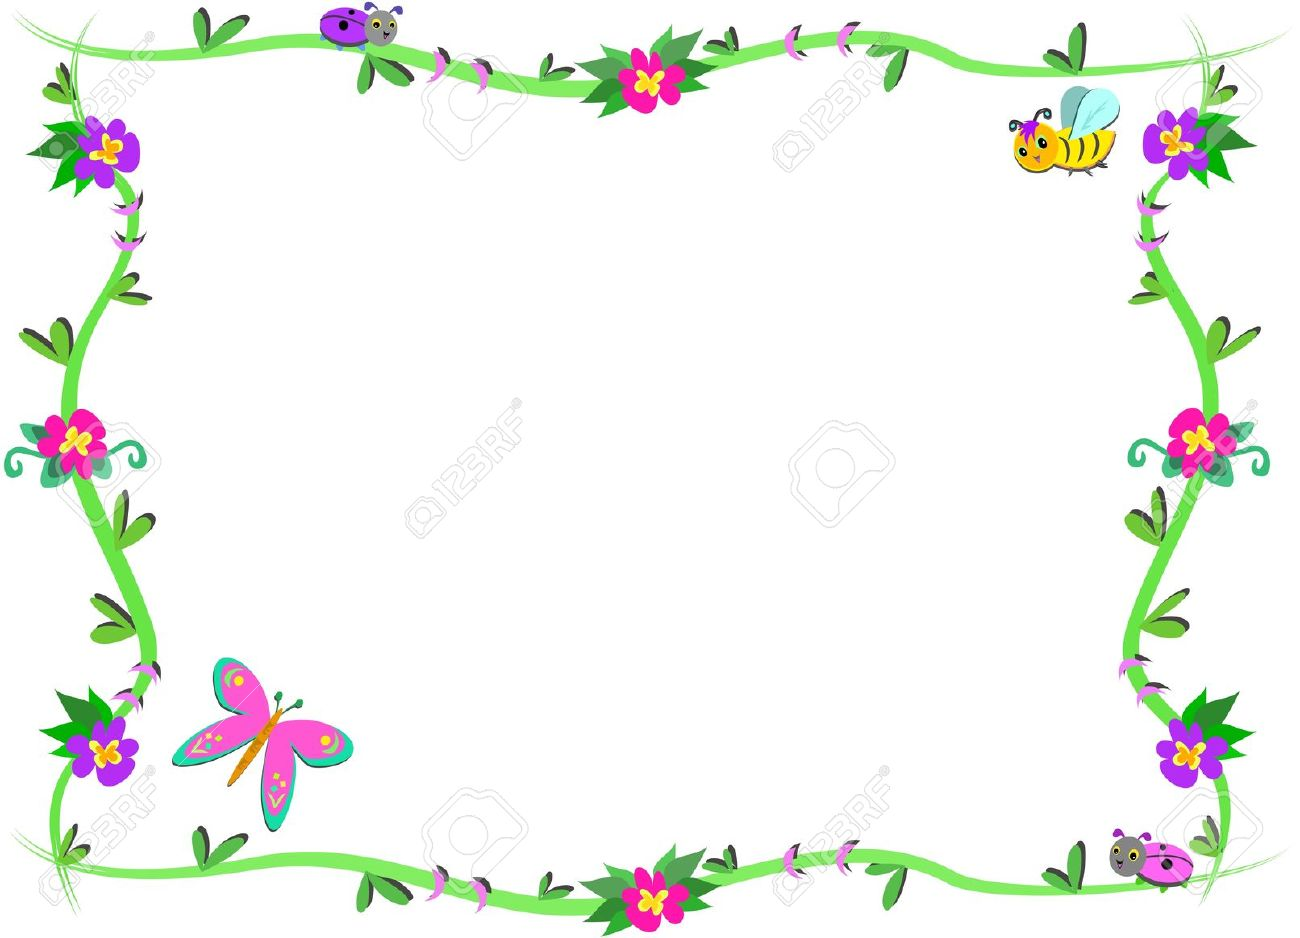 Bugs clipart border Border And Flowers Cute clipart